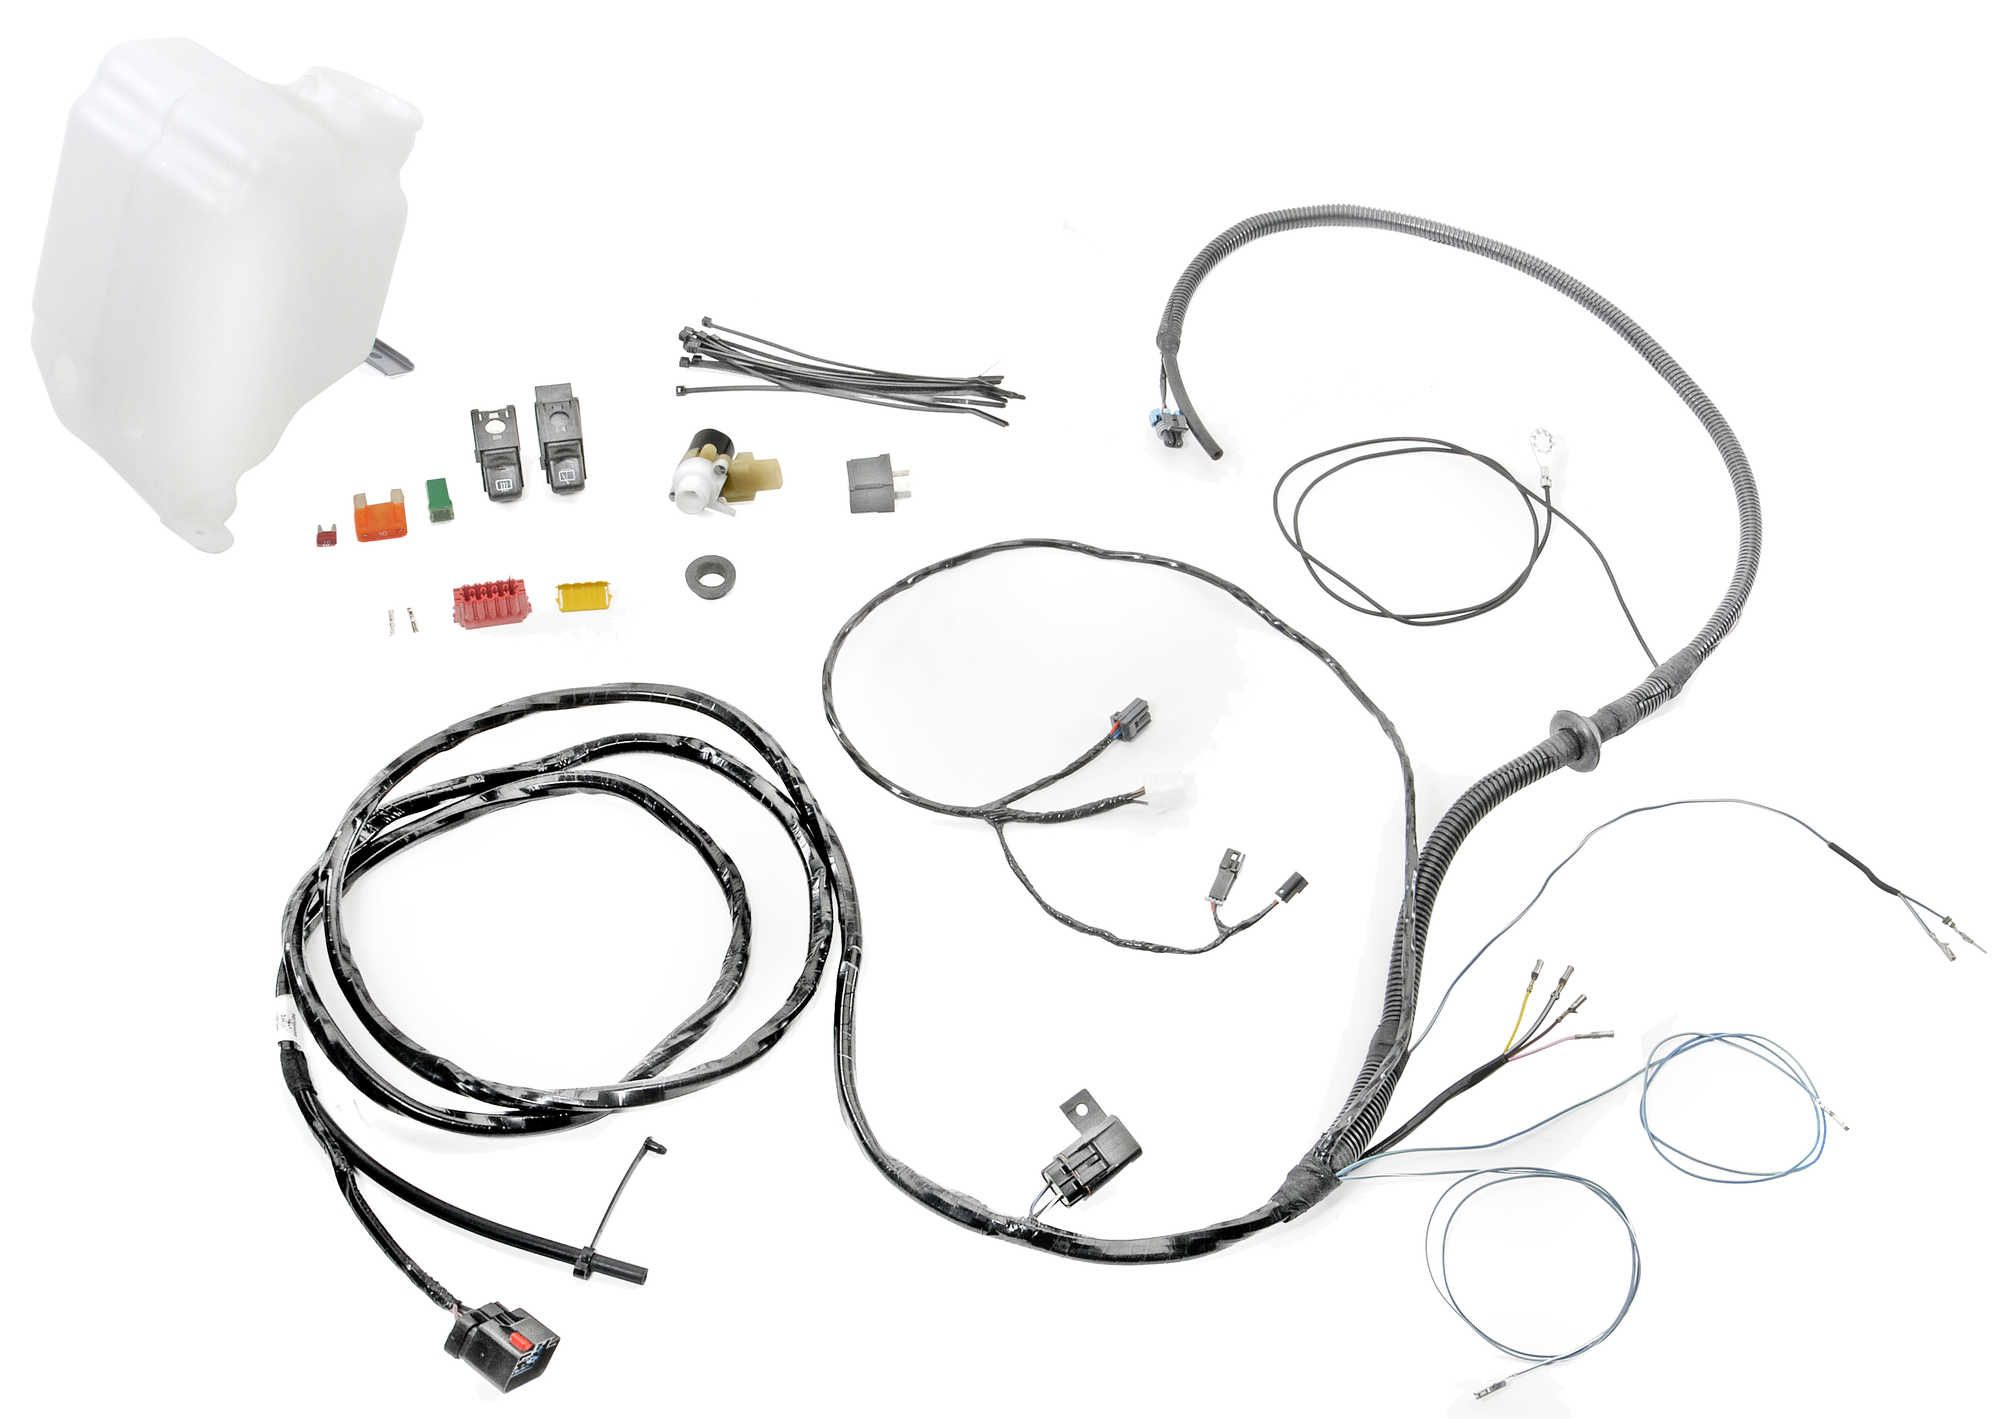 This nd new OE MOPAR® Hard Top wiring kit includes ... Jeep Wrangler Hardtop Wiring Harness on jeep wrangler trailer wiring, geo tracker wiring harness, jeep grand wagoneer wiring harness, jeep tail light wiring harness, dodge dakota wiring harness, 2001 jeep wiring harness, amc amx wiring harness, 2004 jeep wiring harness, jeep wiring harness diagram, jeep transmission wiring harness, honda cr-v wiring harness, chevy aveo wiring harness, chrysler pacifica wiring harness, hummer h2 wiring harness, jeep wrangler wiring sleeve, mazda rx7 wiring harness, jeep wrangler wiring connector, pontiac bonneville wiring harness, chevy cobalt wiring harness, jeep patriot wiring harness,